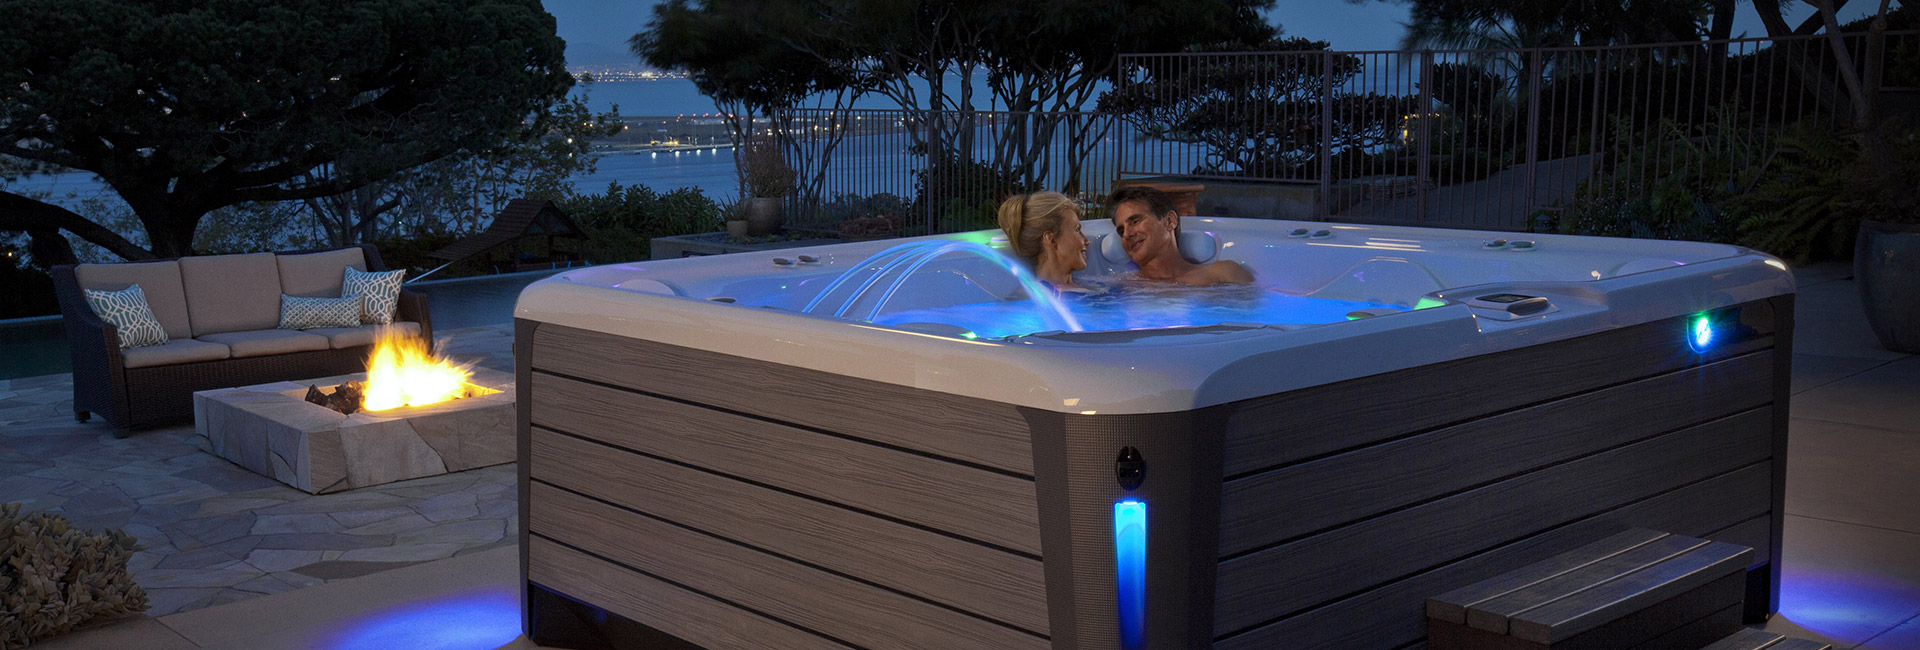 Hot Spring linea highlife NXT vasca idromassaggio